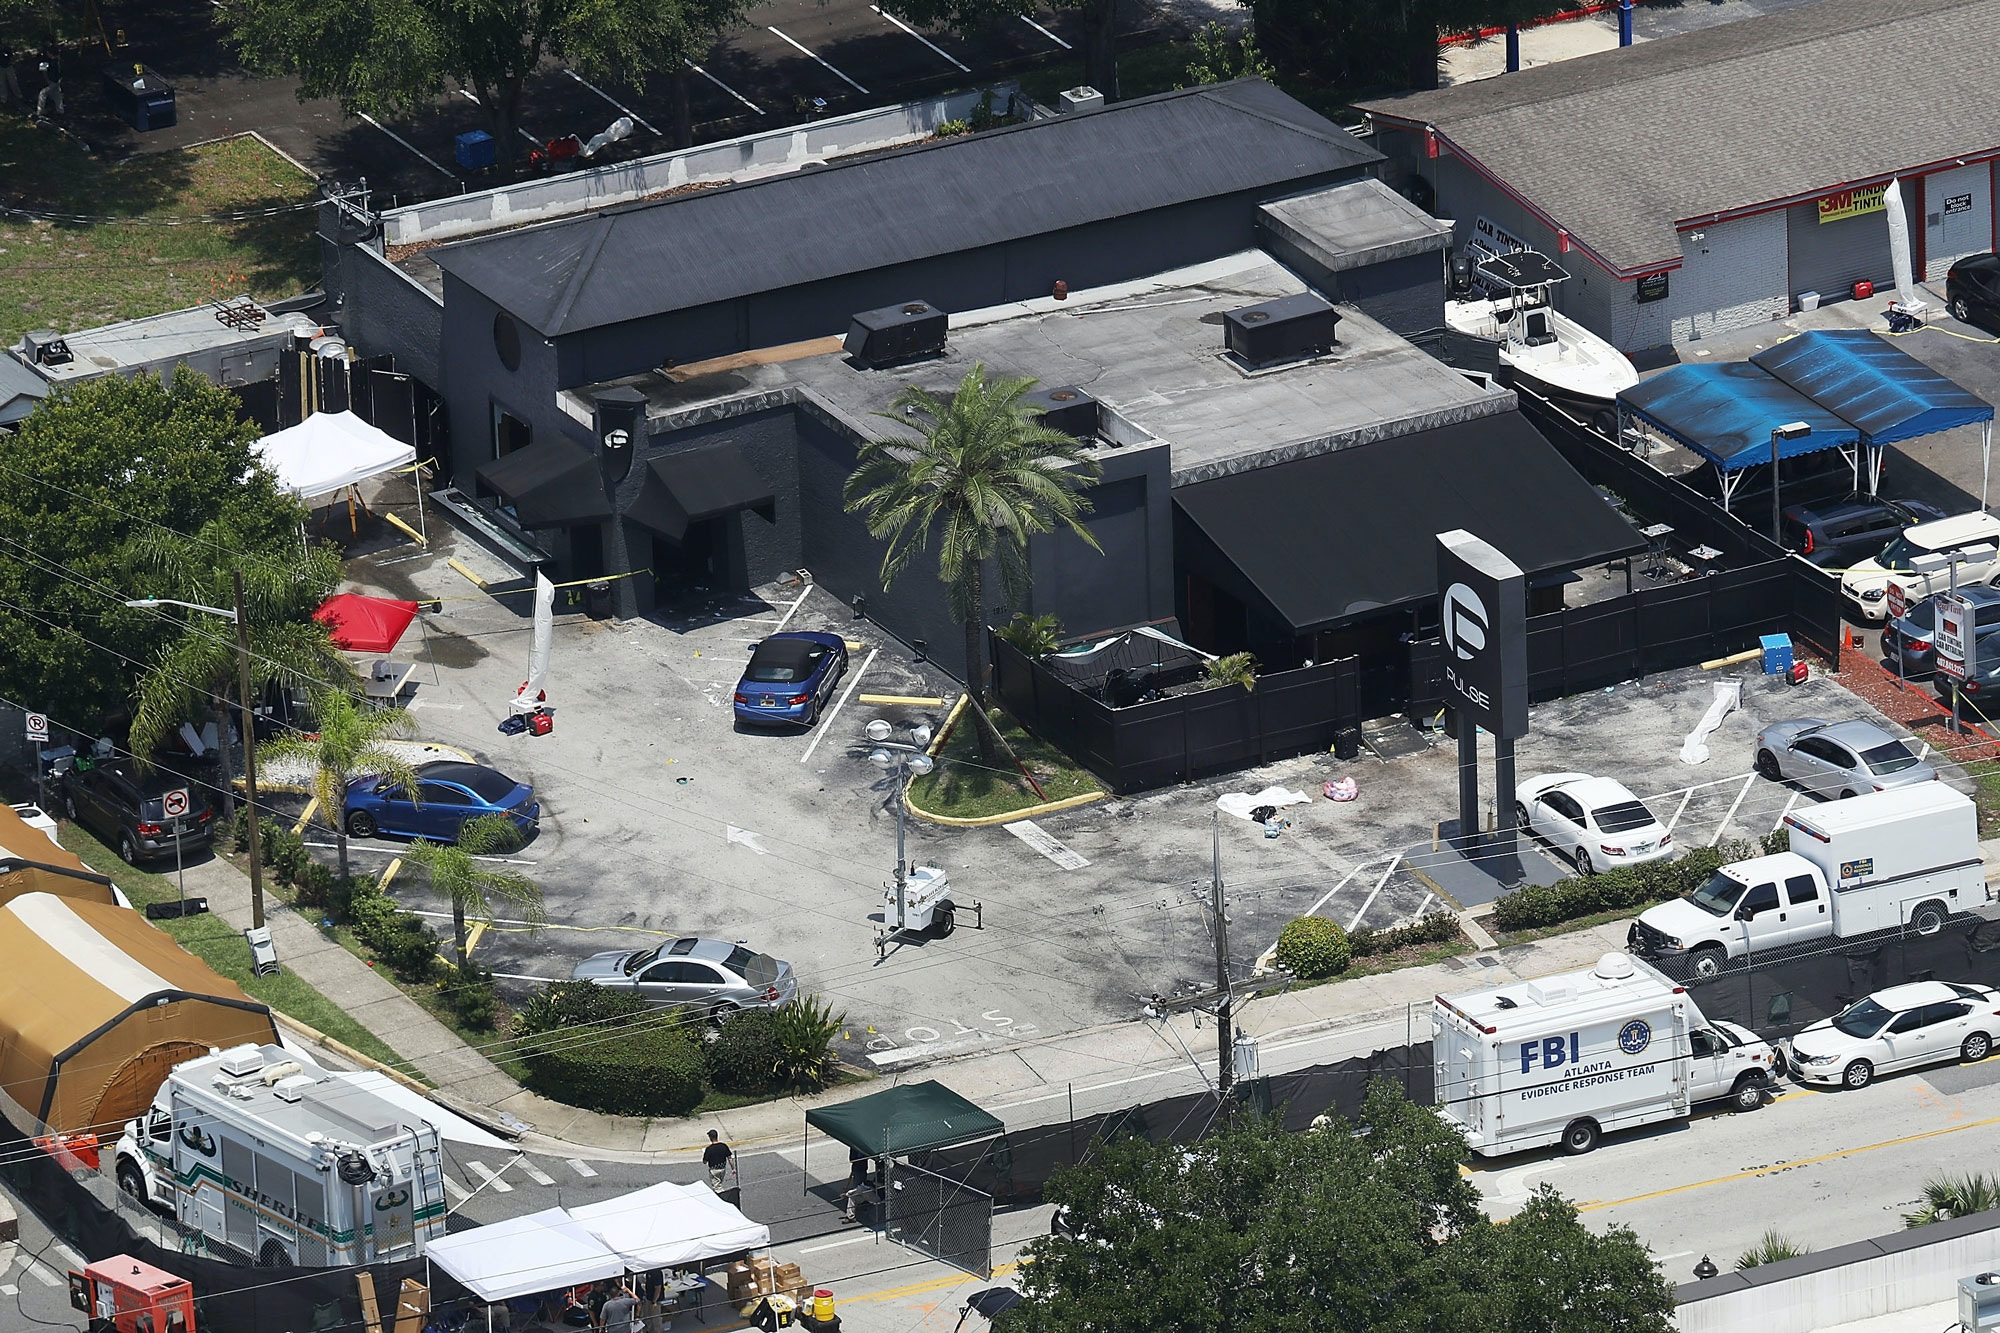 ORLANDO, FL - JUNE 13:  Law enforcement officials investigate at the Pulse gay nightclub where Omar Mateen allegedly killed at least 50 people on June 13, 2016 in Orlando, Florida. The mass shooting killed at least 50 people and injuring 53 others in what is the deadliest mass shooting in the country's history.  (Photo by Joe Raedle/Getty Images)